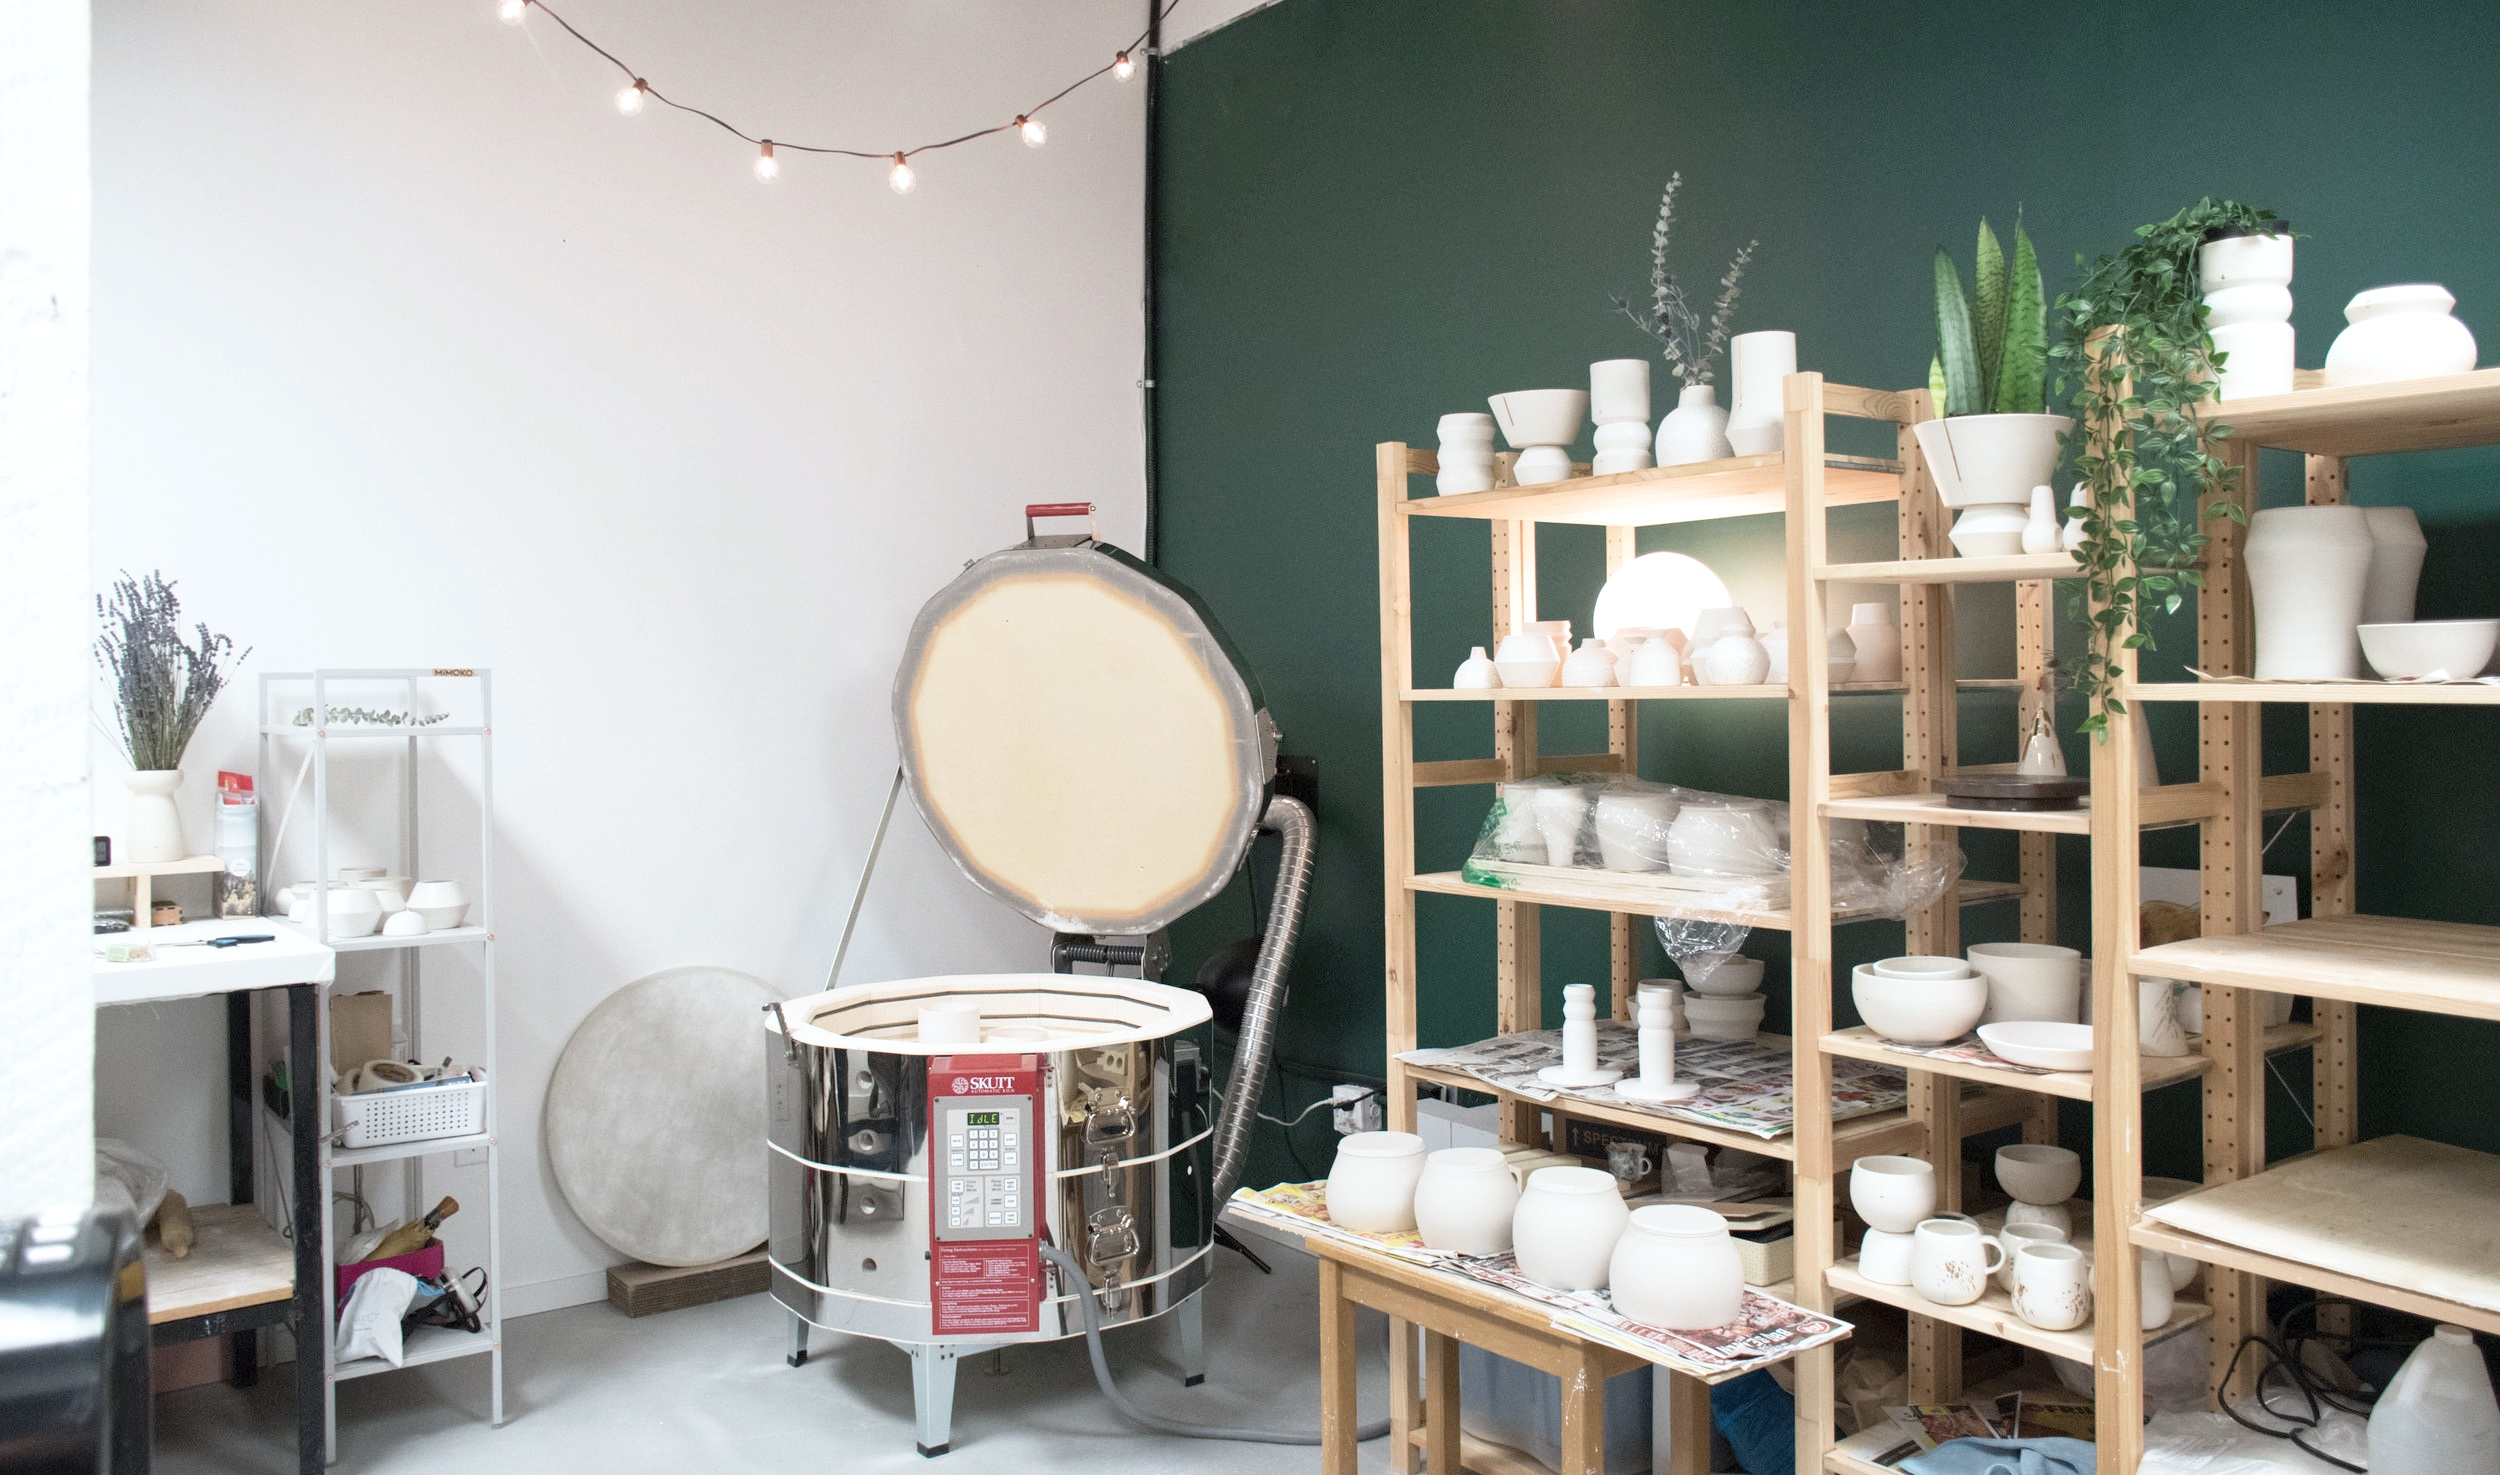 MiMOKO Ceramics studio with shelves full of pottery and open kiln.